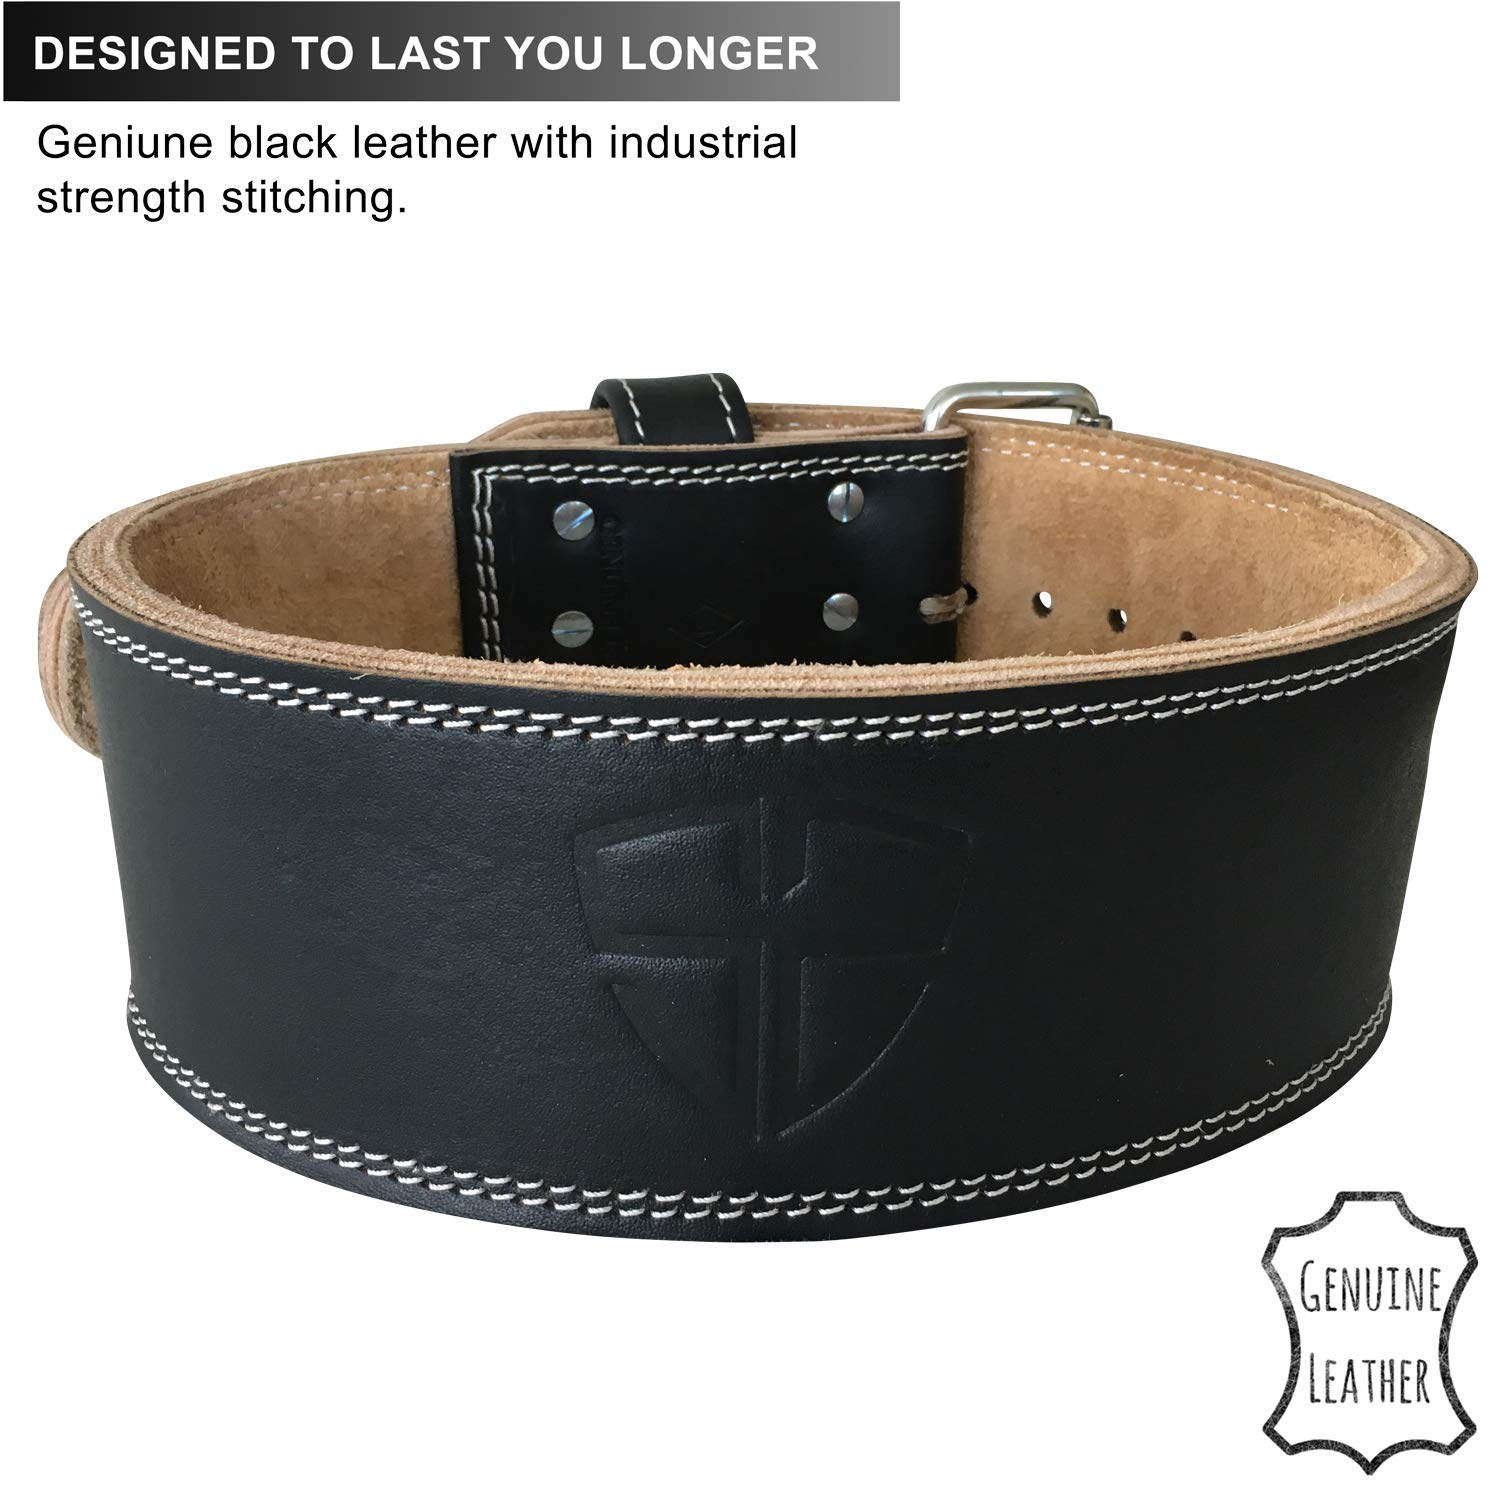 Steel Sweat Weight Lifting Belt - 4 Inches Wide by 10mm - Single Prong Powerlifting Belt That's Heavy Duty - Genuine Cowhide Leather - Medium Texus by Steel Sweat (Image #6)